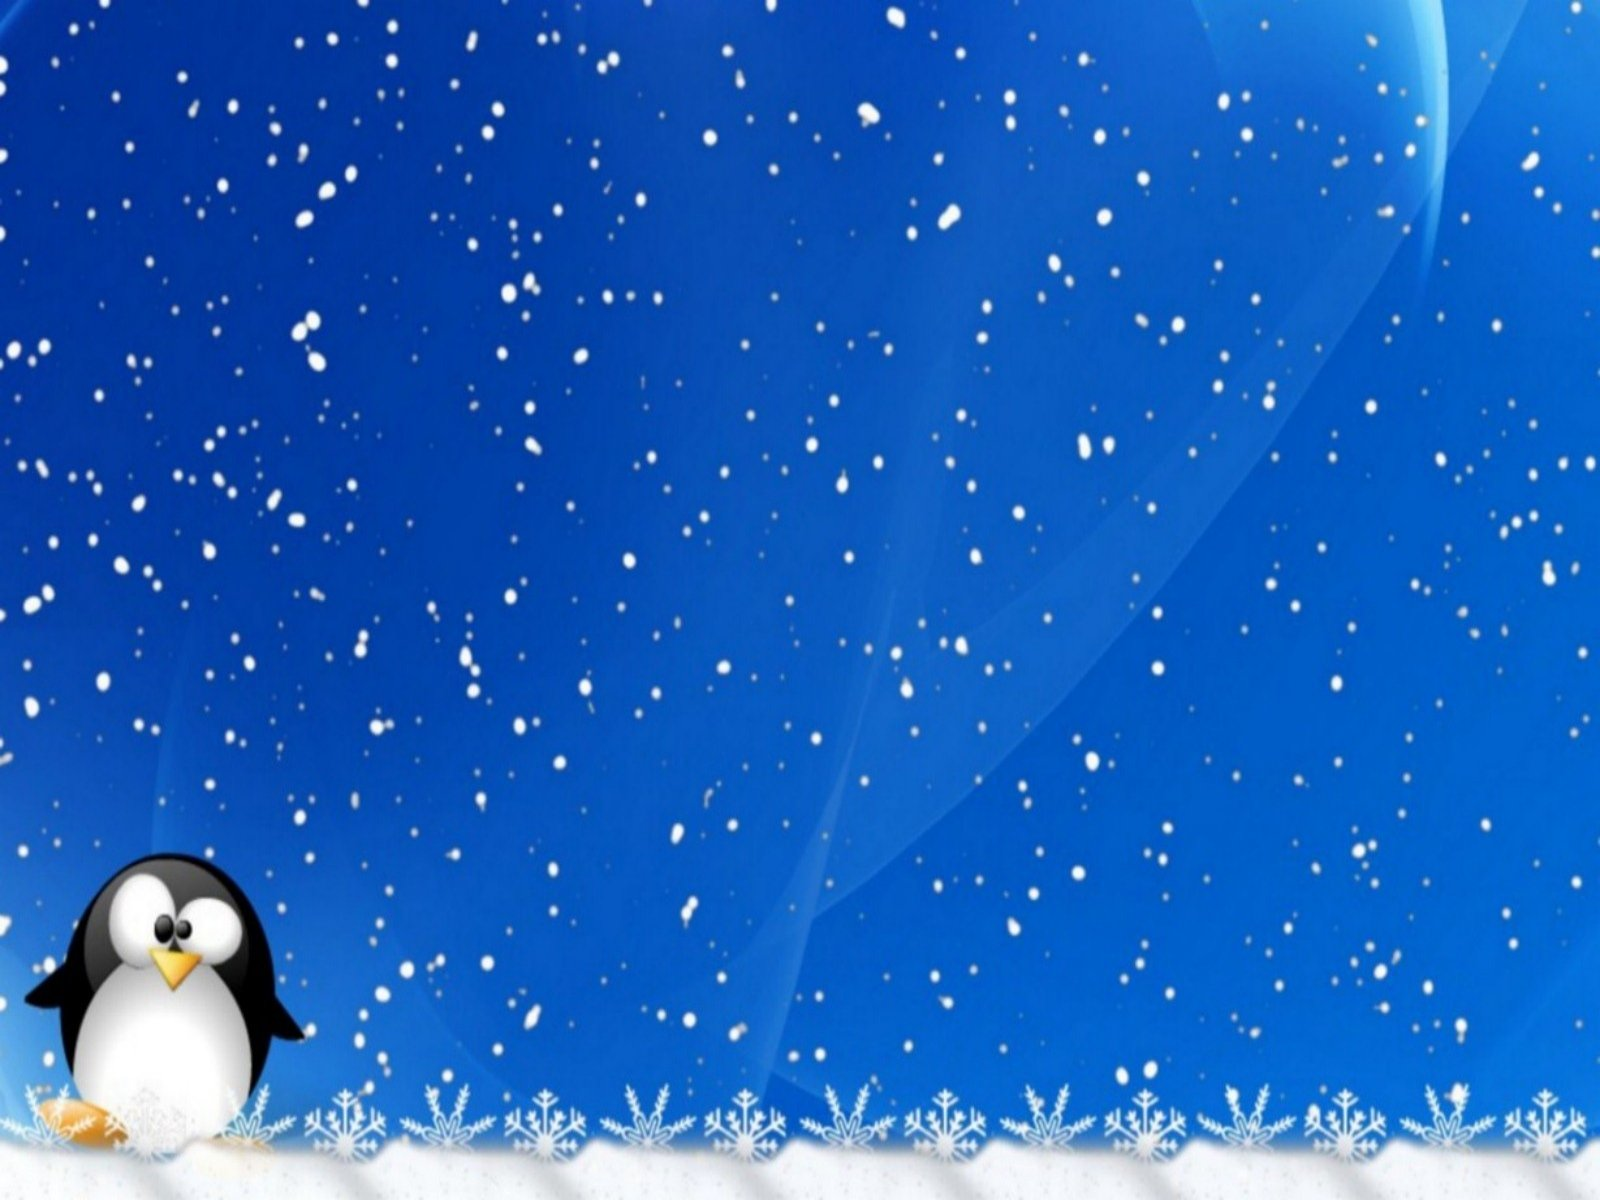 Winter Christmas Backgrounds: [72+] Winter Christmas Desktop Backgrounds On WallpaperSafari